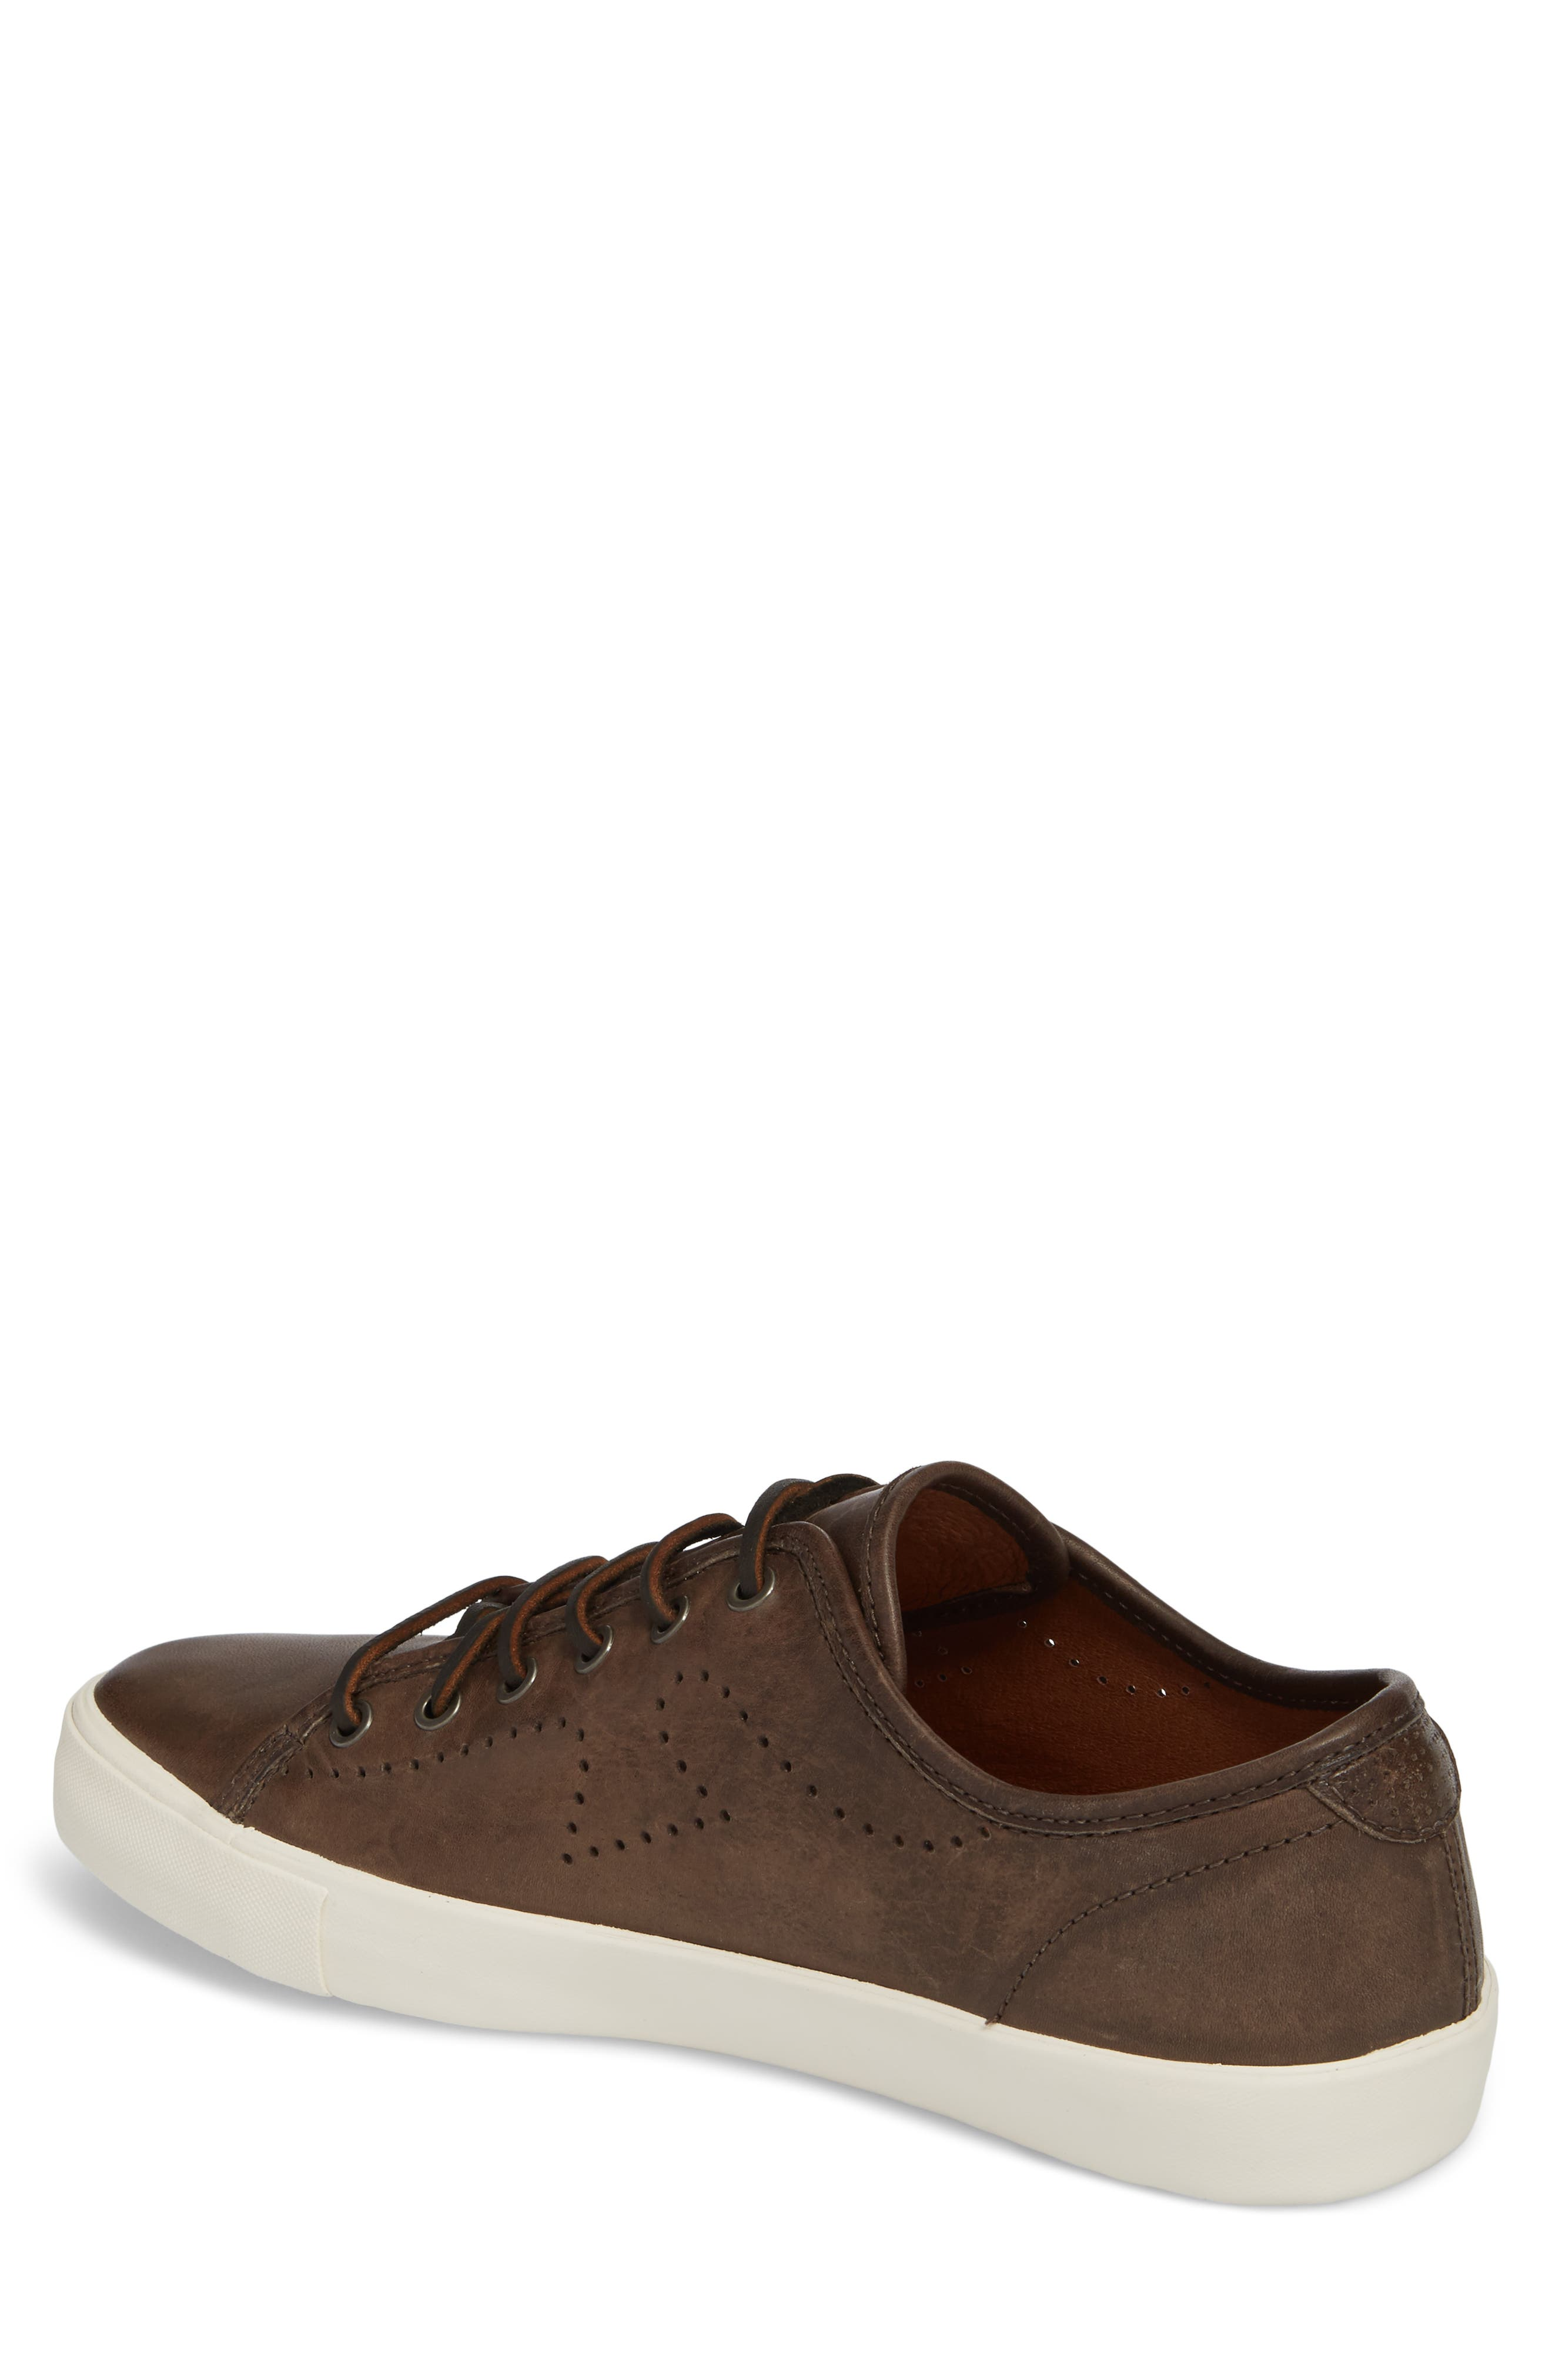 Brett Perforated Logo Low Top Sneaker,                             Alternate thumbnail 2, color,                             Slate Leather